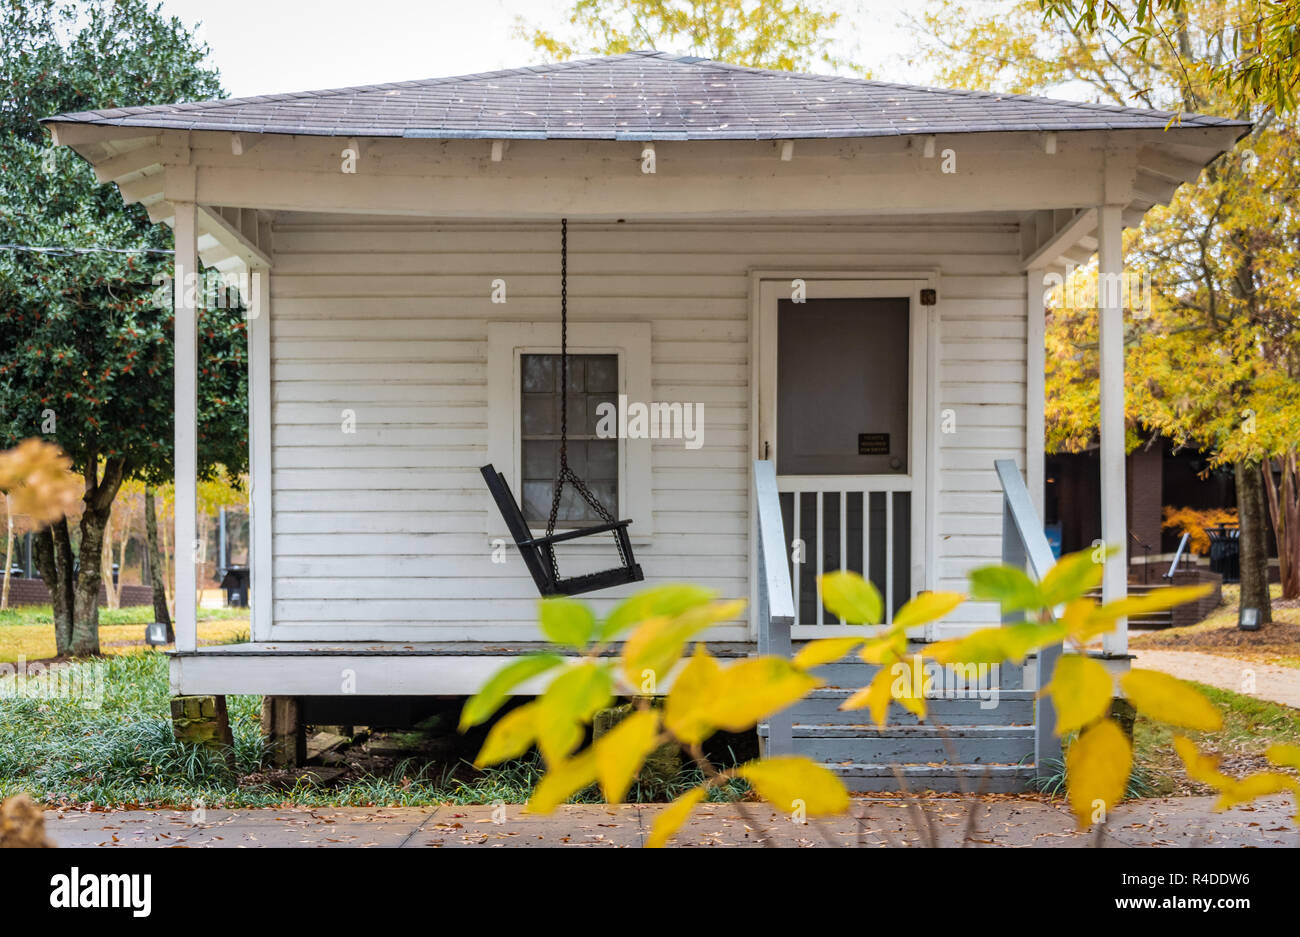 Birthplace of American music icon Elvis Presley in Tupelo, Mississippi. Elvis was born in this house built by his father on January 8, 1935. - Stock Image